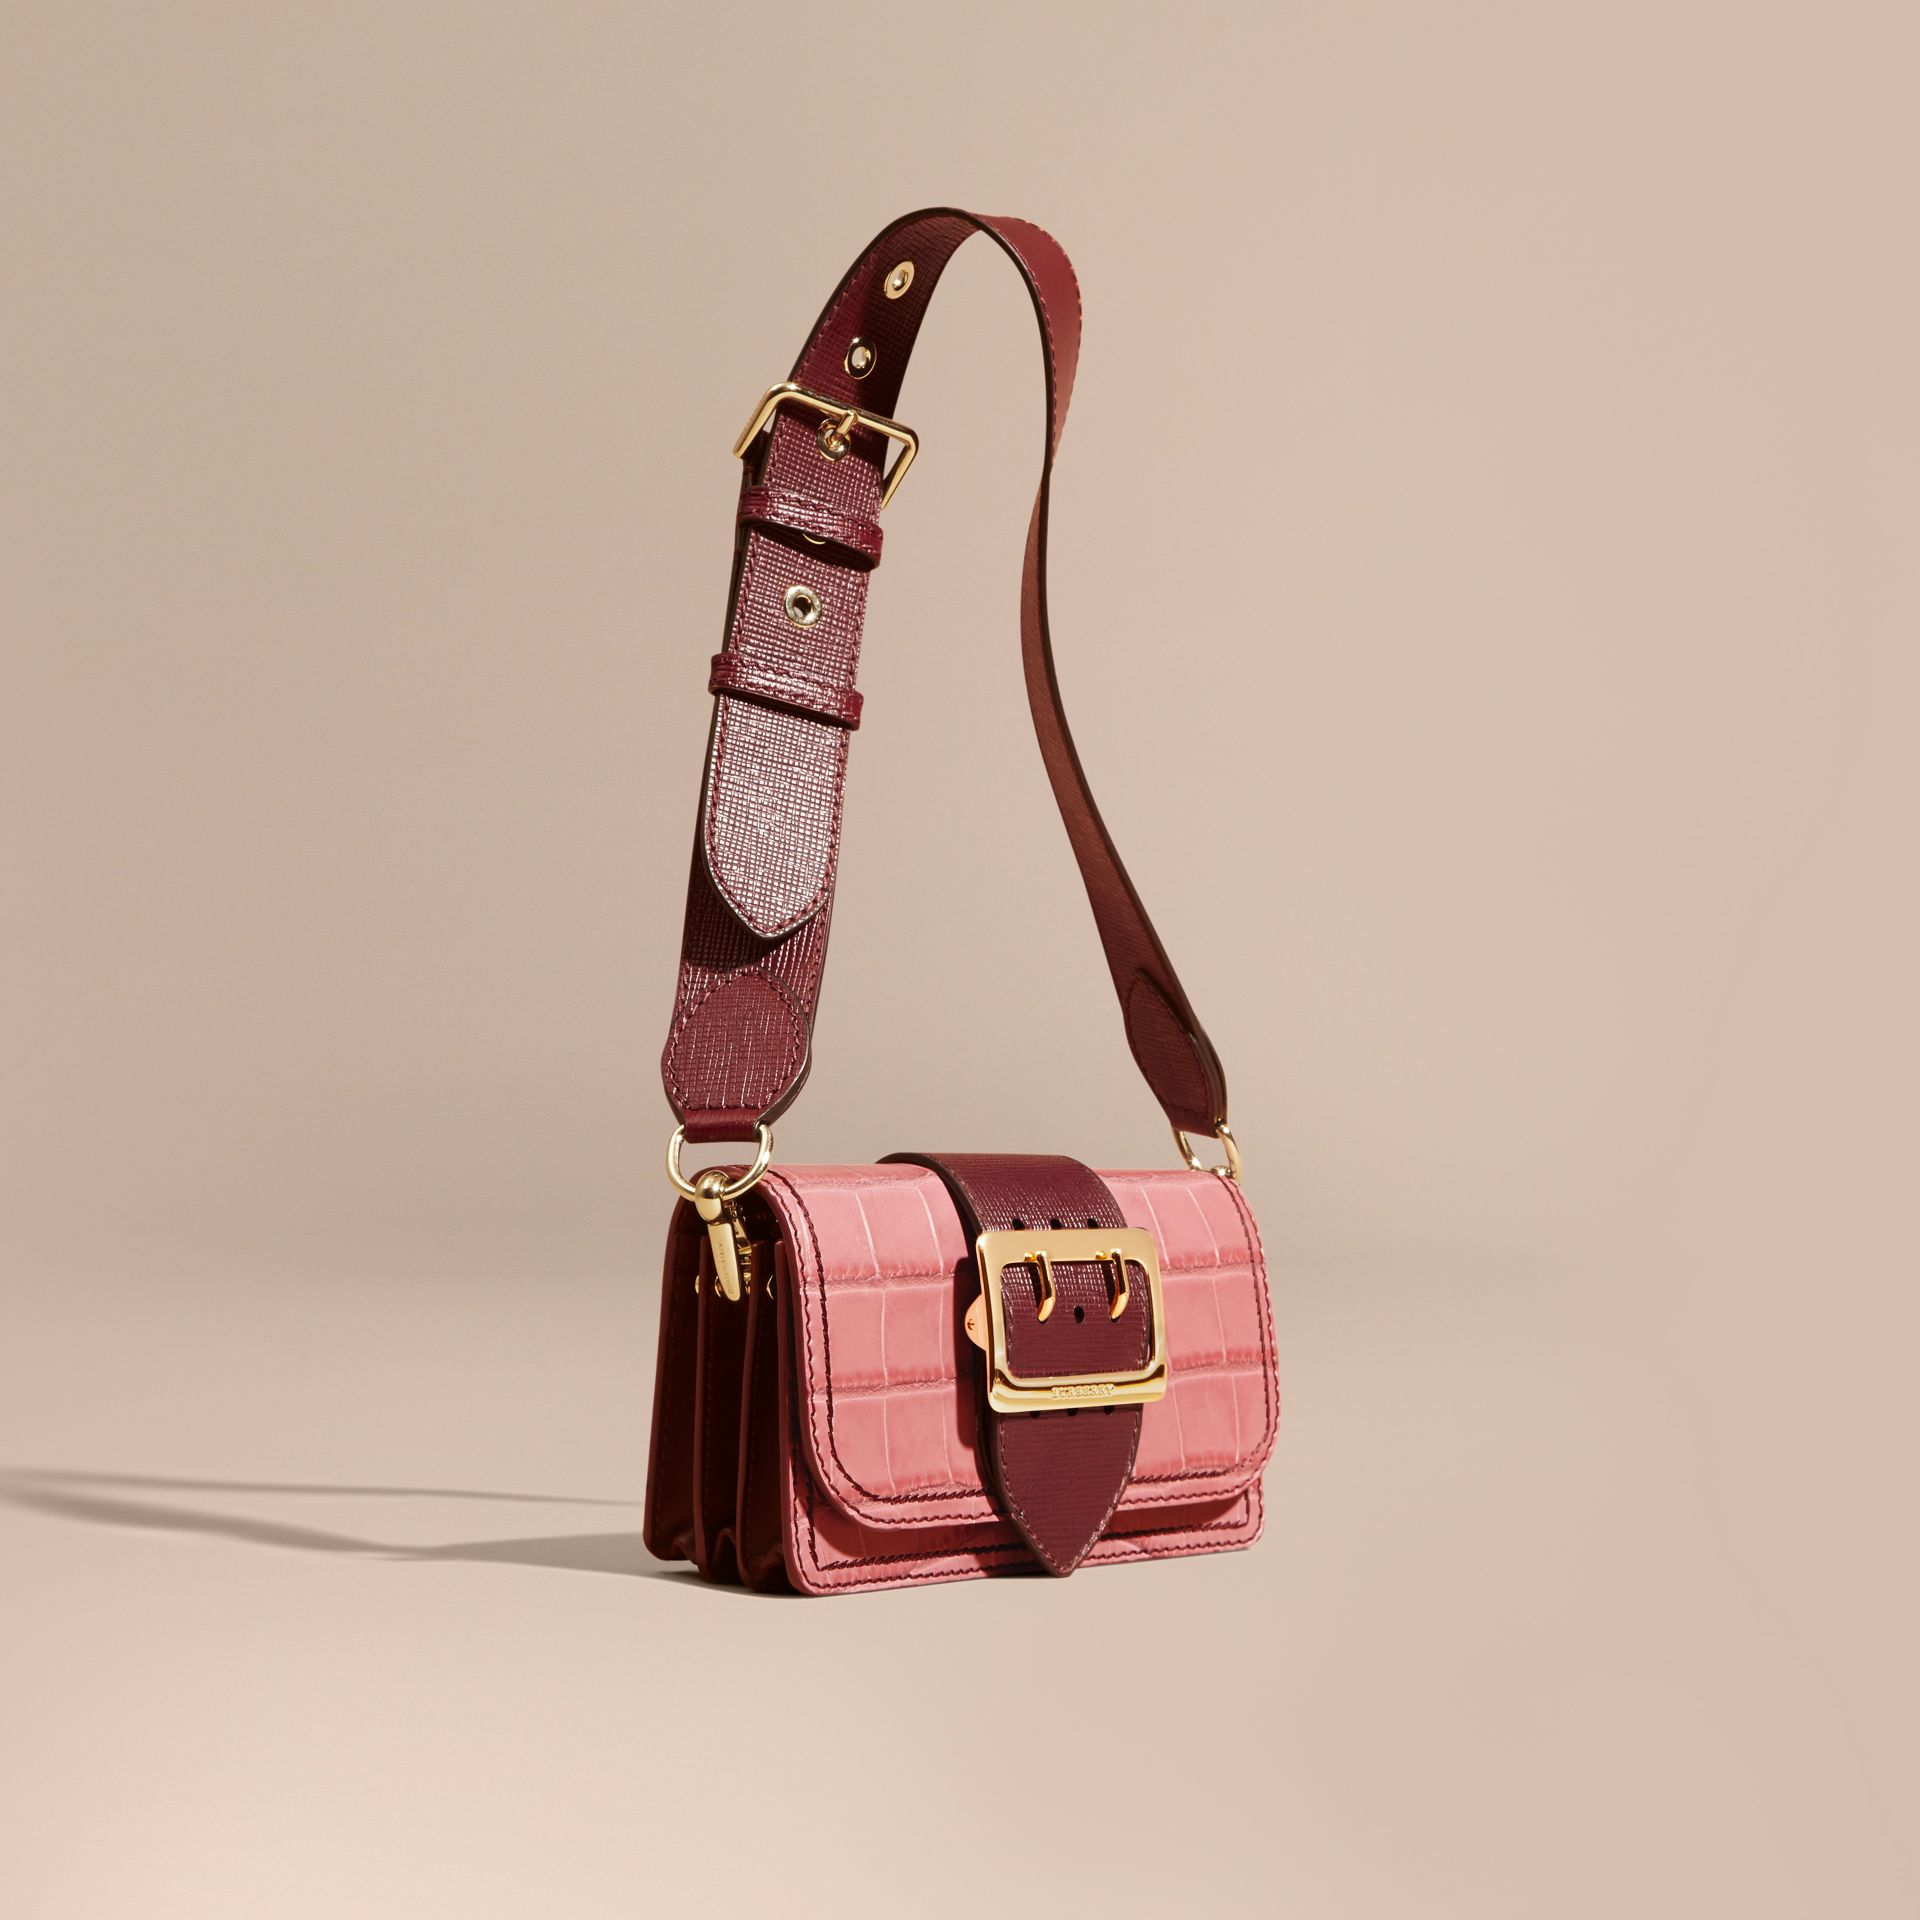 The Small Buckle Bag in Alligator and Leather in Dusky Pink/ Burgundy - Women | Burberry - gallery image 1